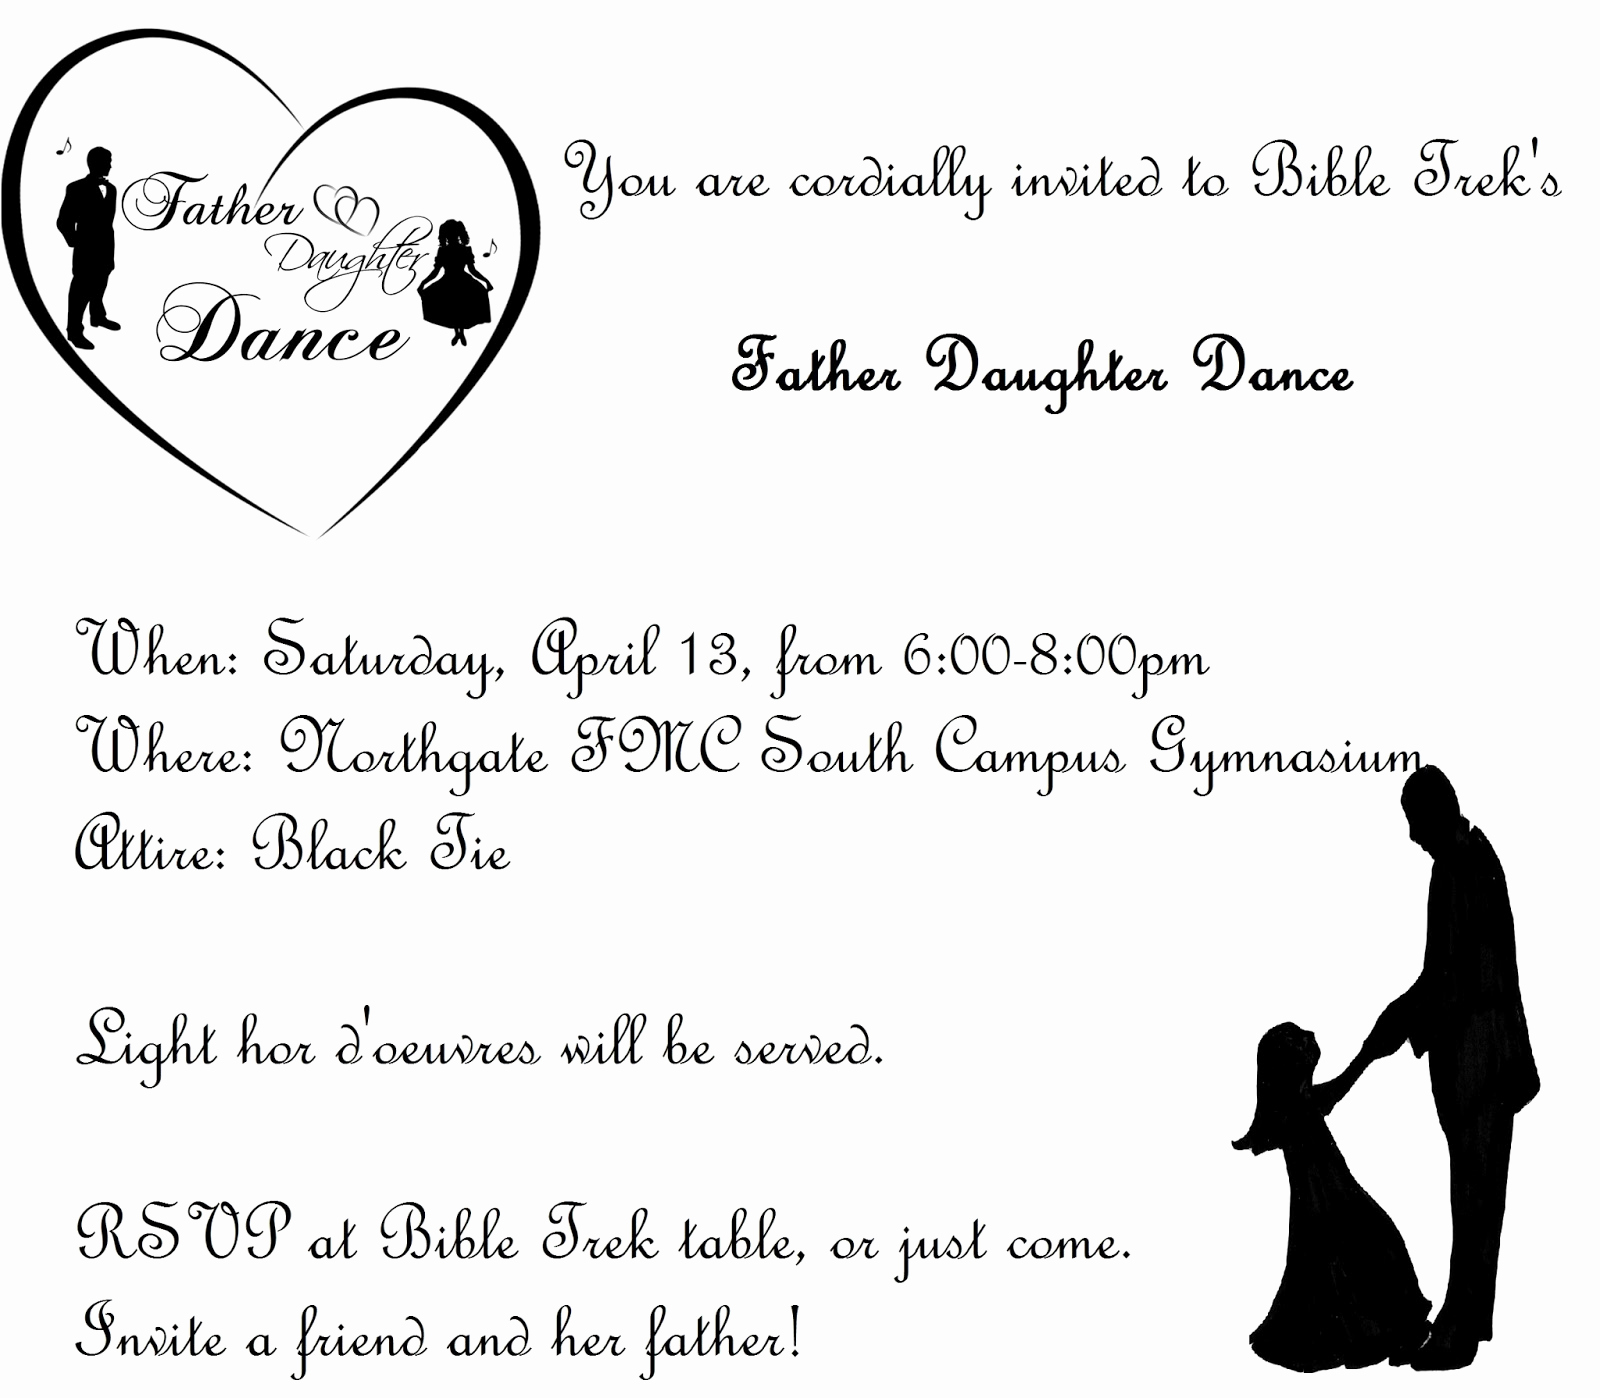 Father Daughter Dance Invitation Template Fresh northgate Kids April 2013